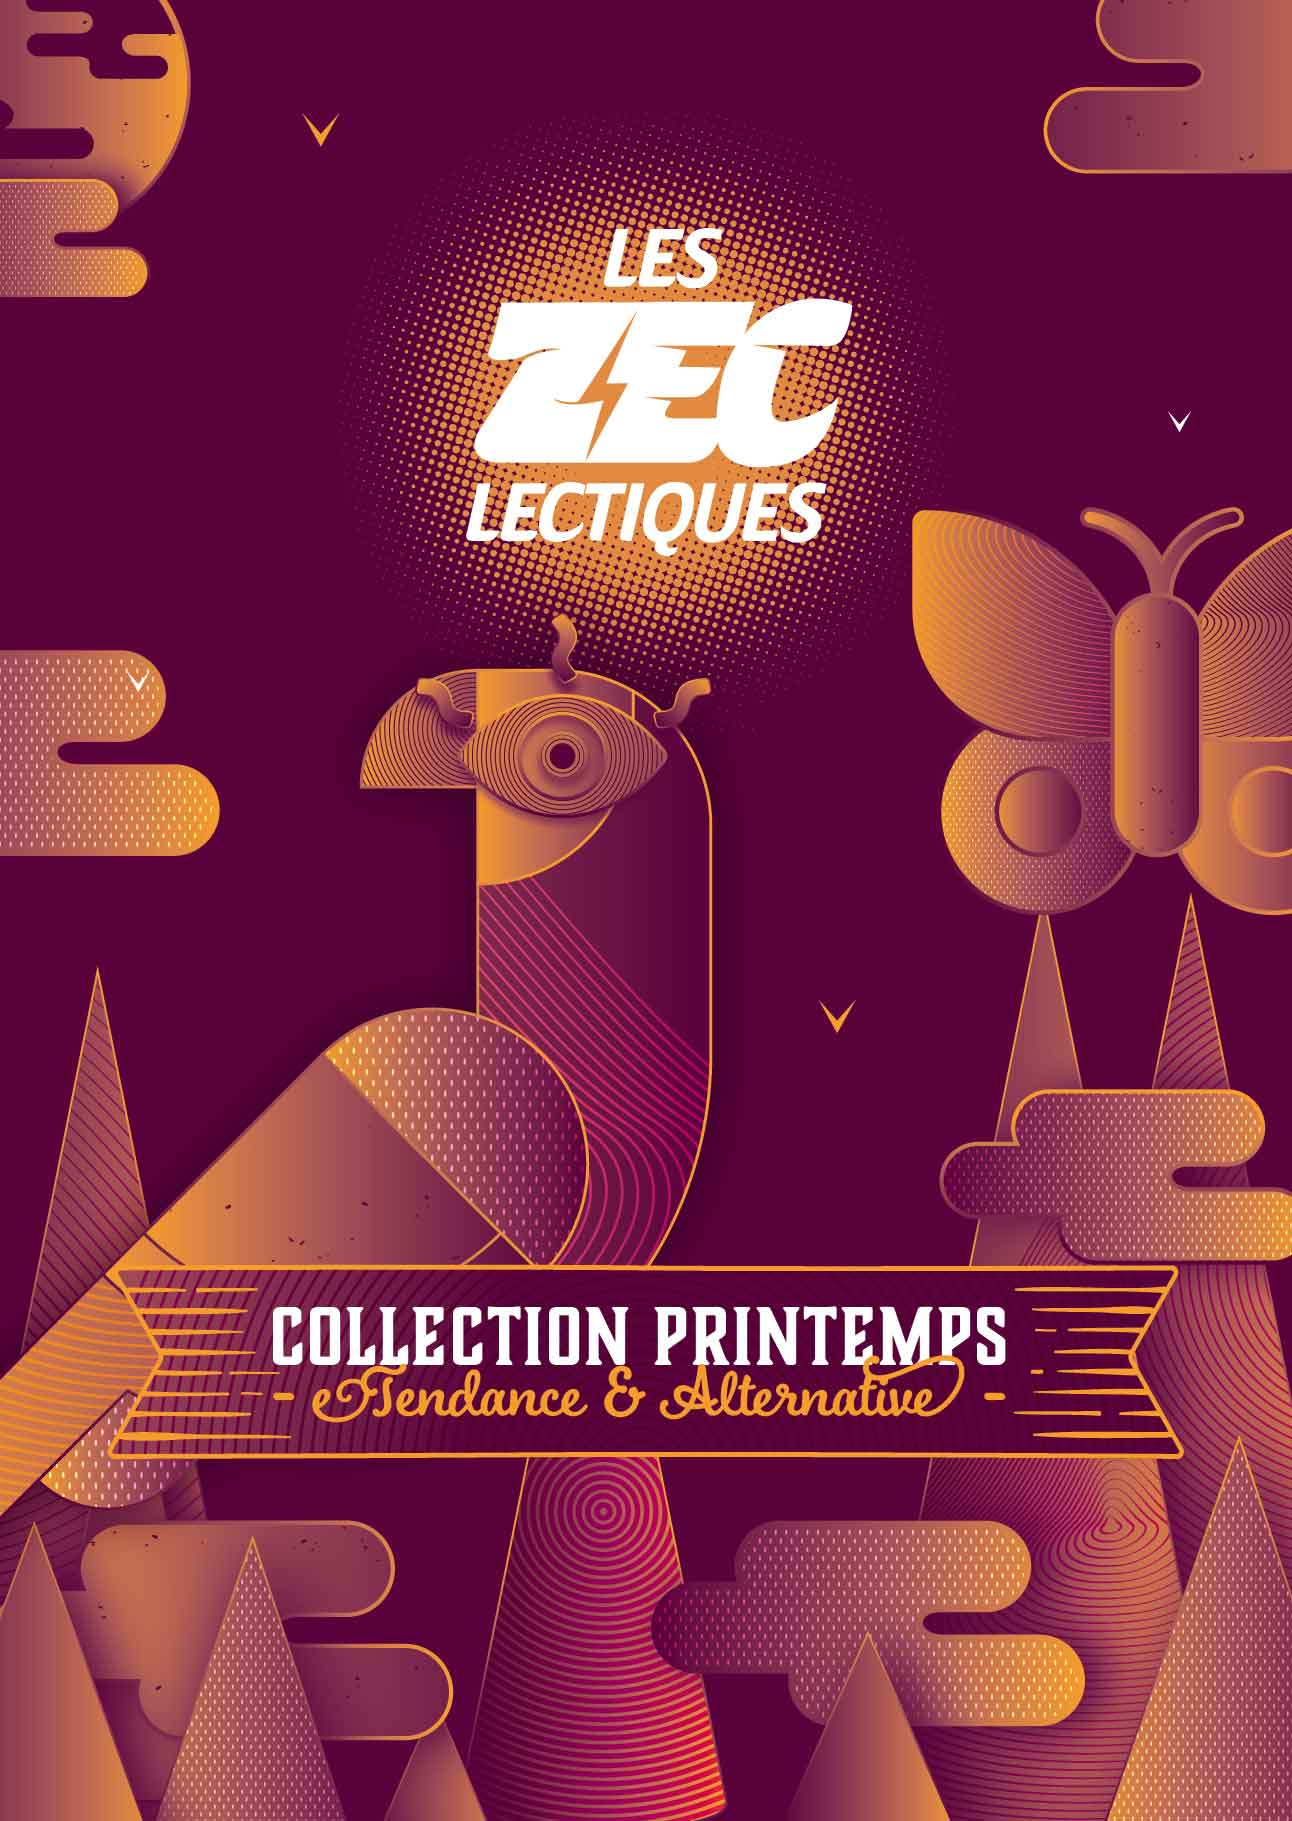 Billetterie Collection Printemps 2019 Les Z'Eclectiques